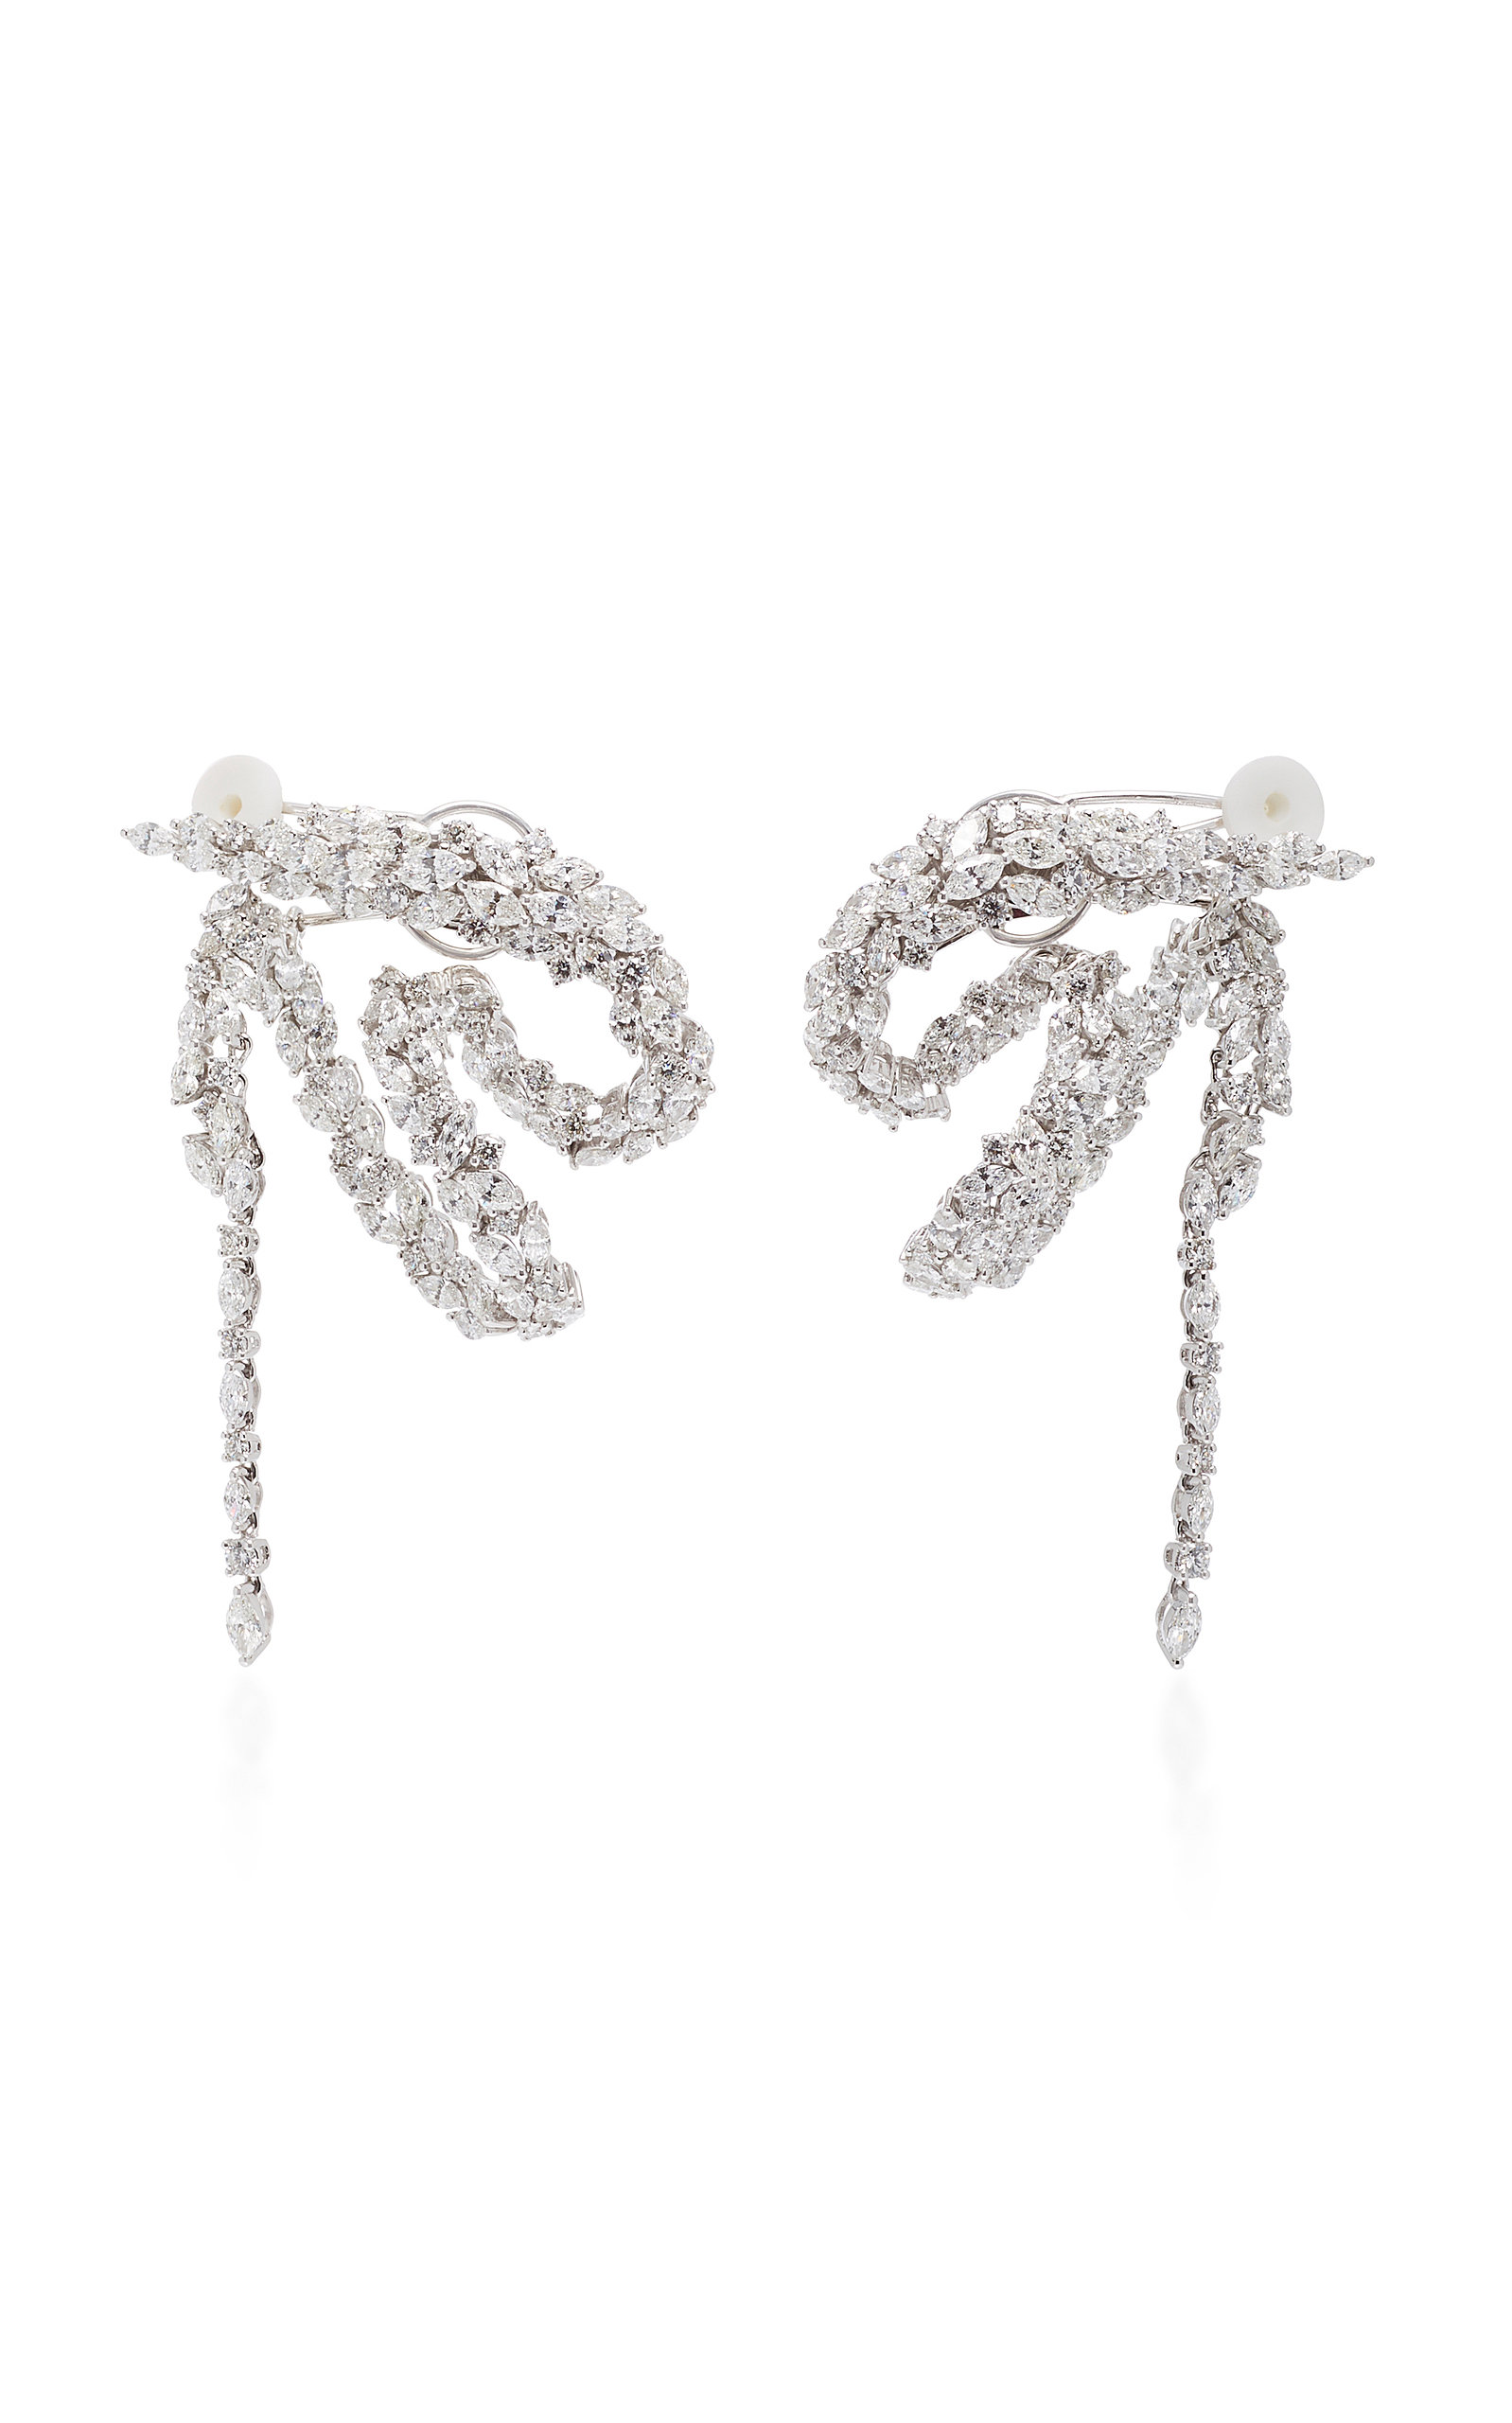 Yeprem Chevalier Waterfall Earrings 4Bf8s